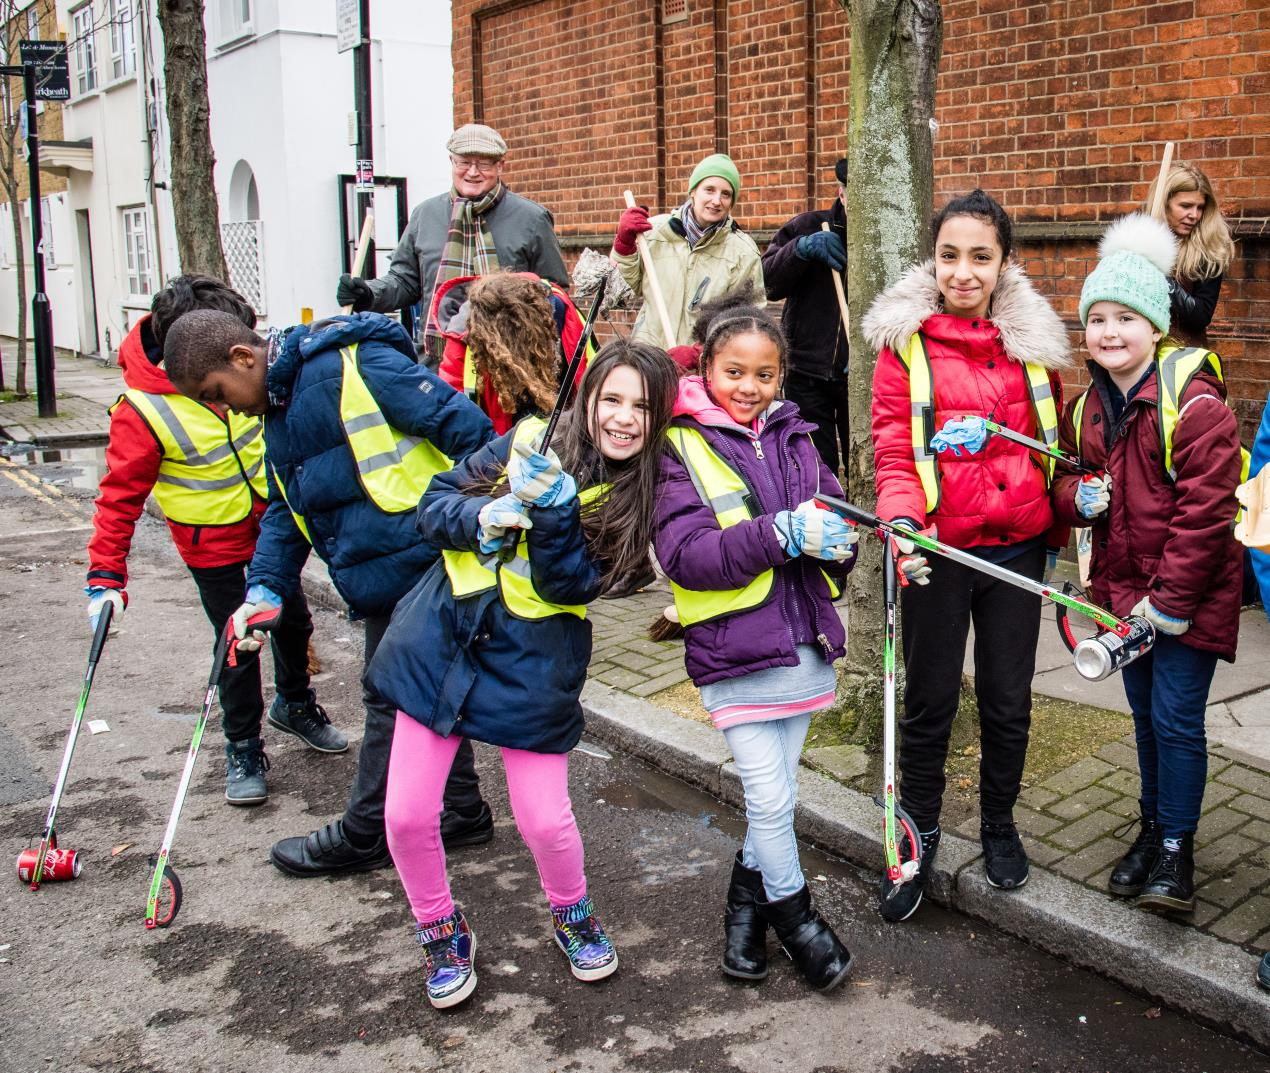 Grafton_Primary_School_pupils_are_joined_by_members_of_the_Nag%27s_Head_Town_Centre_Management_Group_at_one_of_the_borough%27s_Community_Clean-Up_events_in_Nag%27s_Head_town_centre%2c_Holloway.